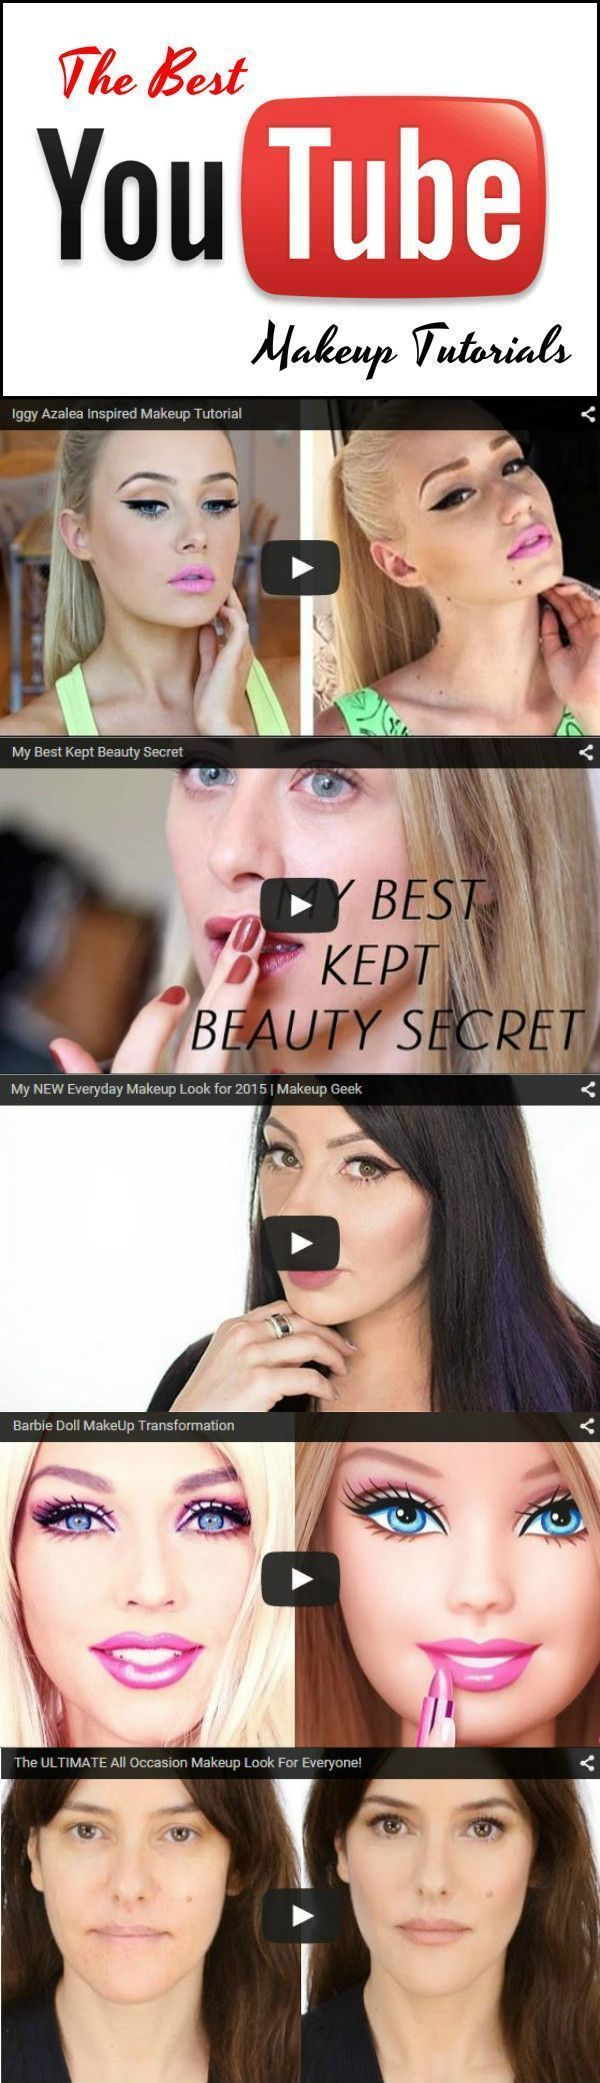 Top 10 Youtube Makeup Tutorials | The Best Beauty Tips and Tricks at http://makeuptutorials.com/youtube-makeup-tutorials-part-1/